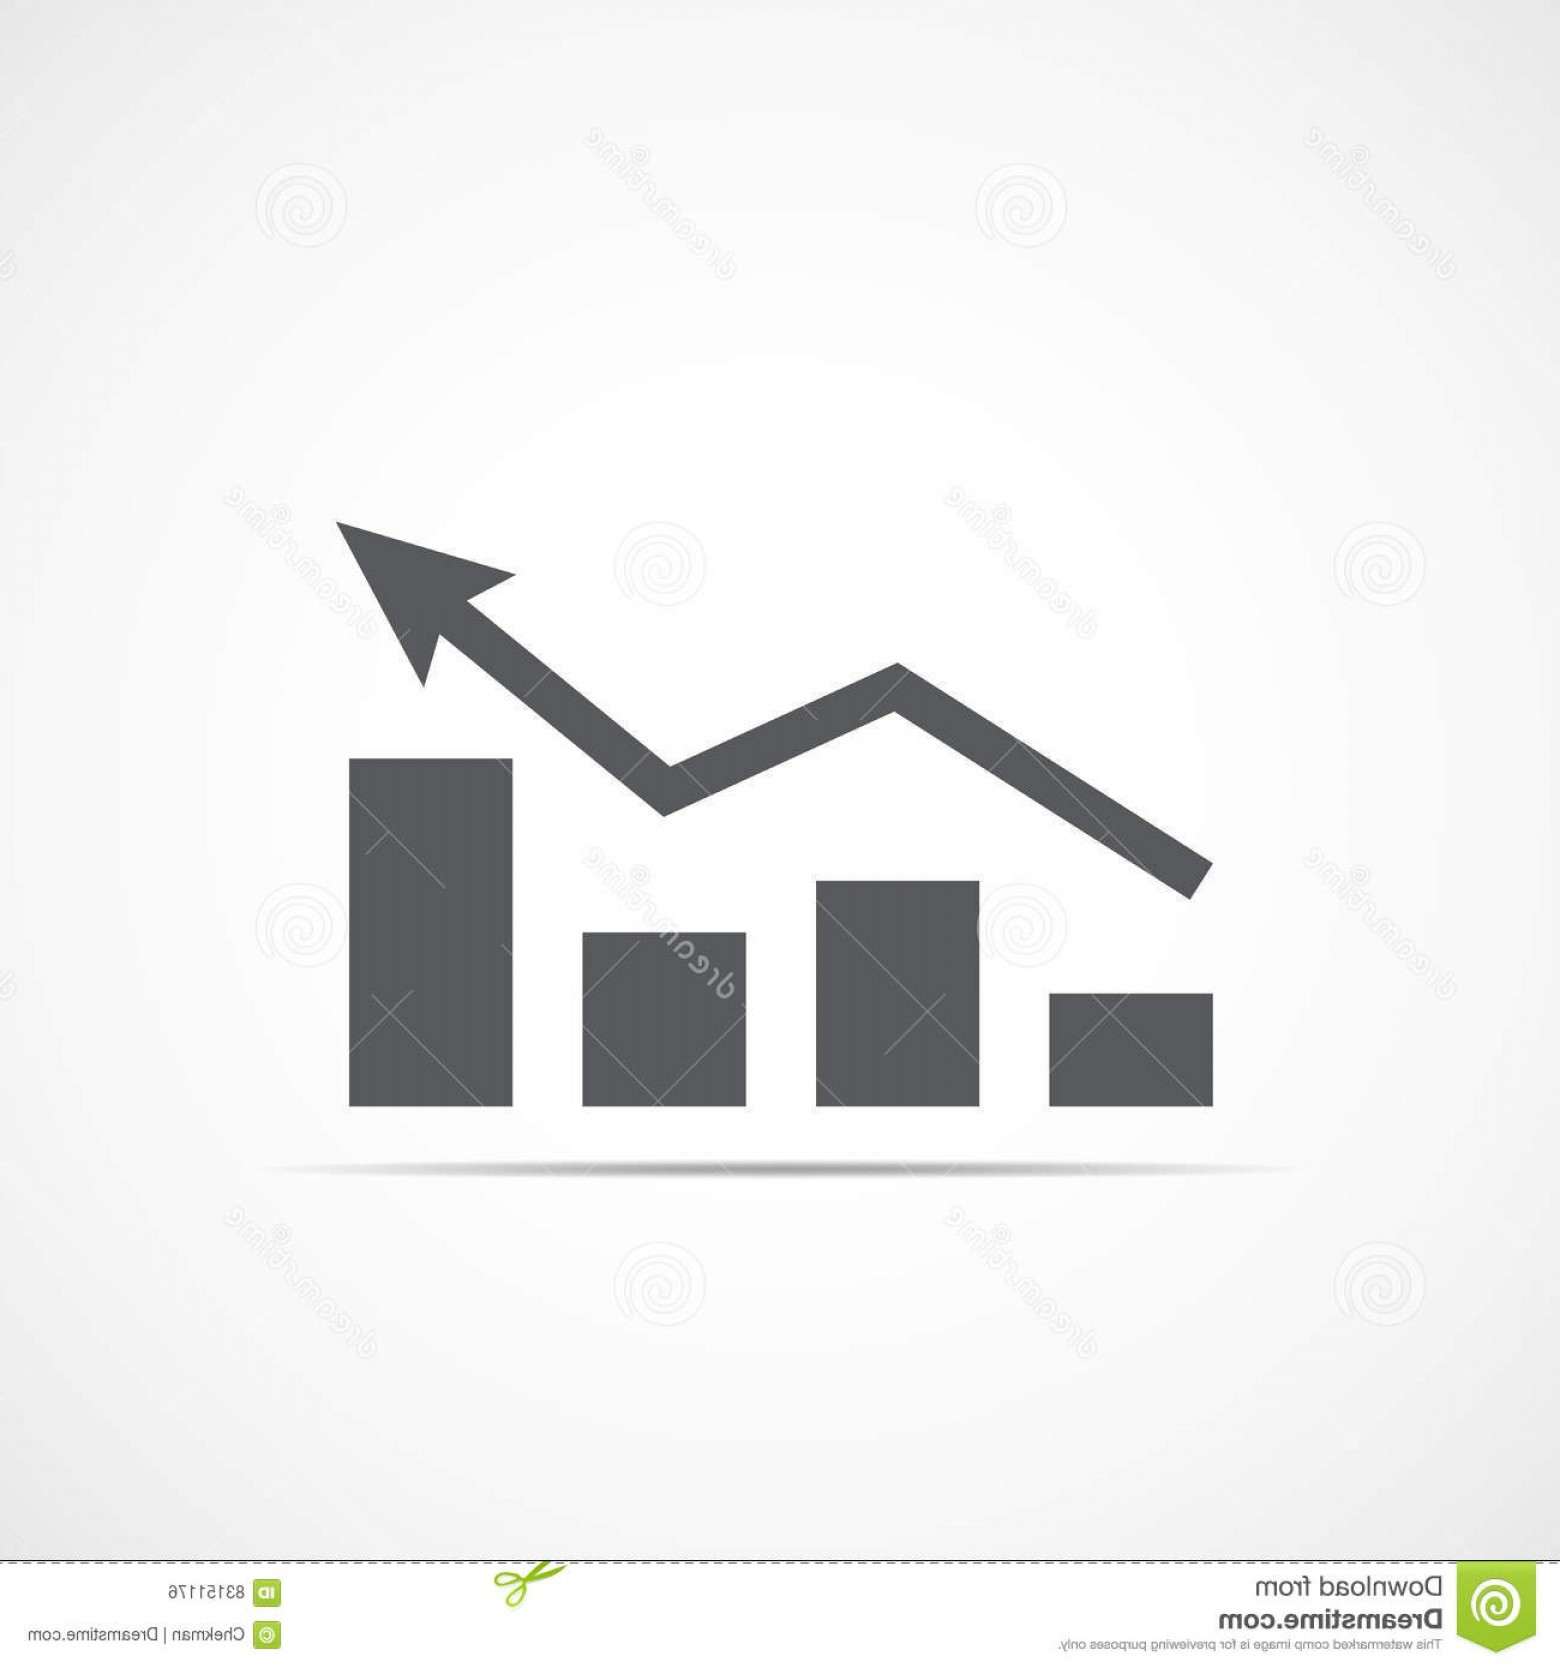 Bar Graph Icon Vector: Stock Illustration Growing Bar Graph Icon Vector Illustration Rising Arrow Financial Forecast Gray Graphic Image